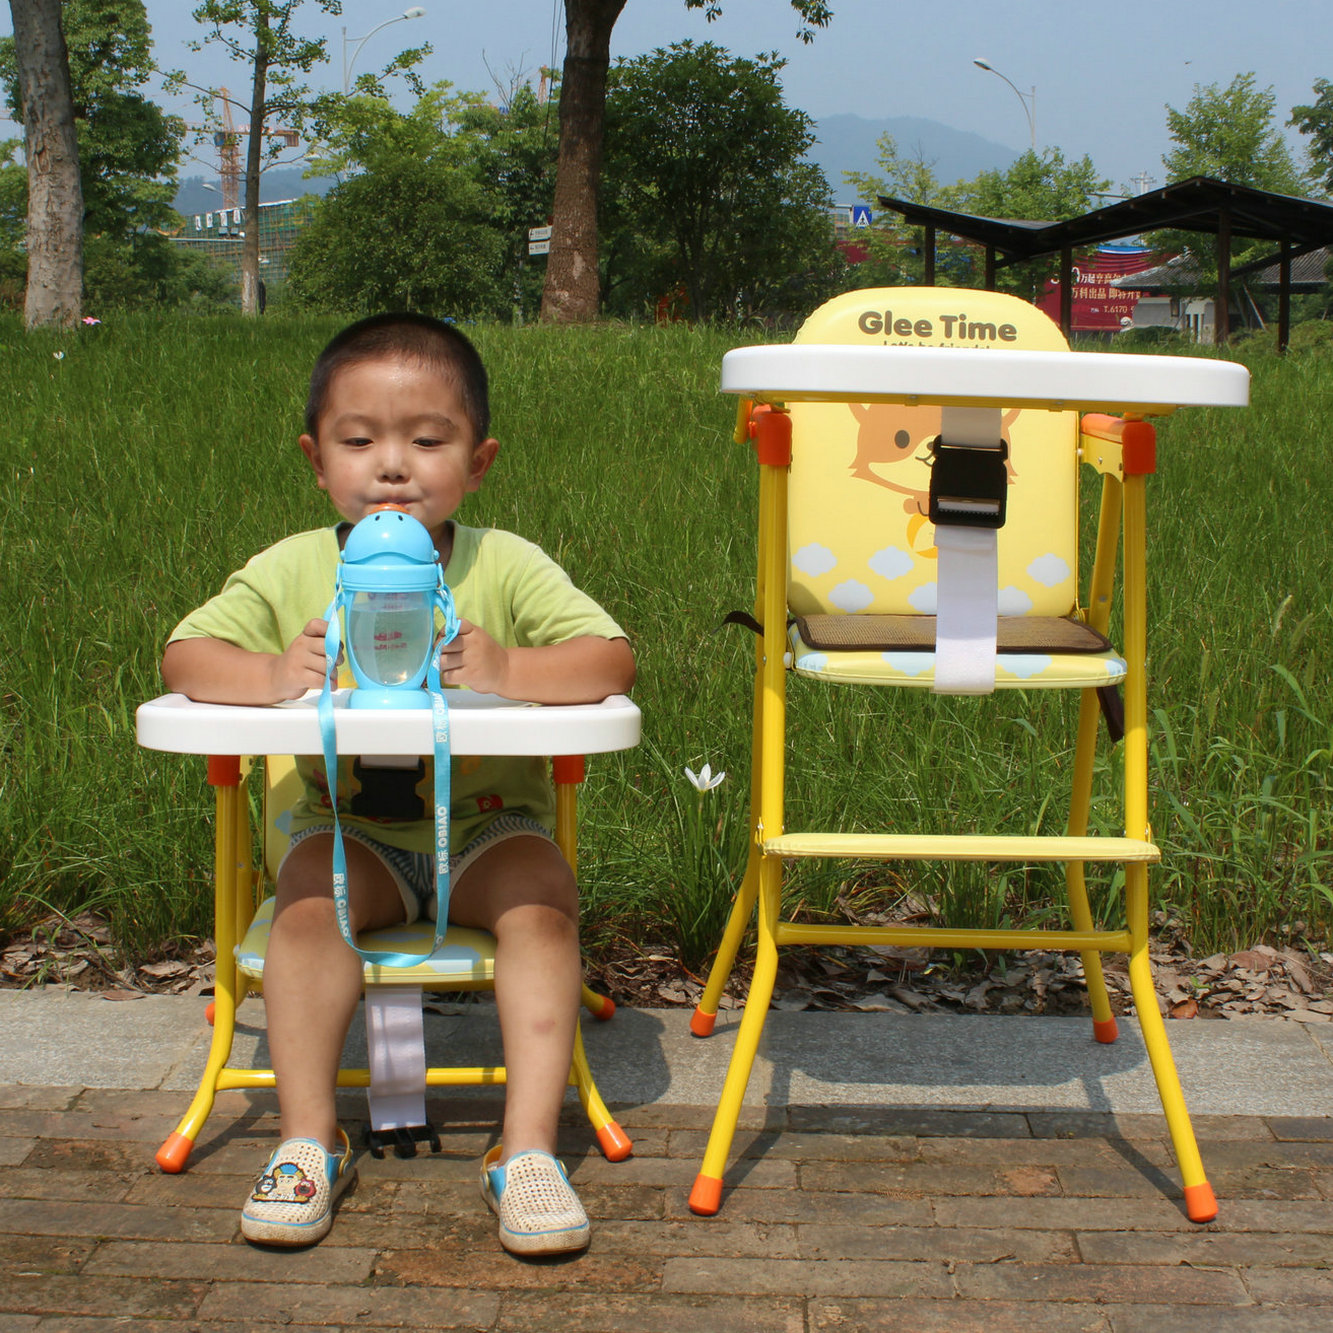 Export Style Children's Dinning Chair, Folding & Portable Children Dinner Table & Seat, Professional Baby Feeding Chair free shipping children eat chair the portable folding multi function plastic baby chairs and tables for dinner